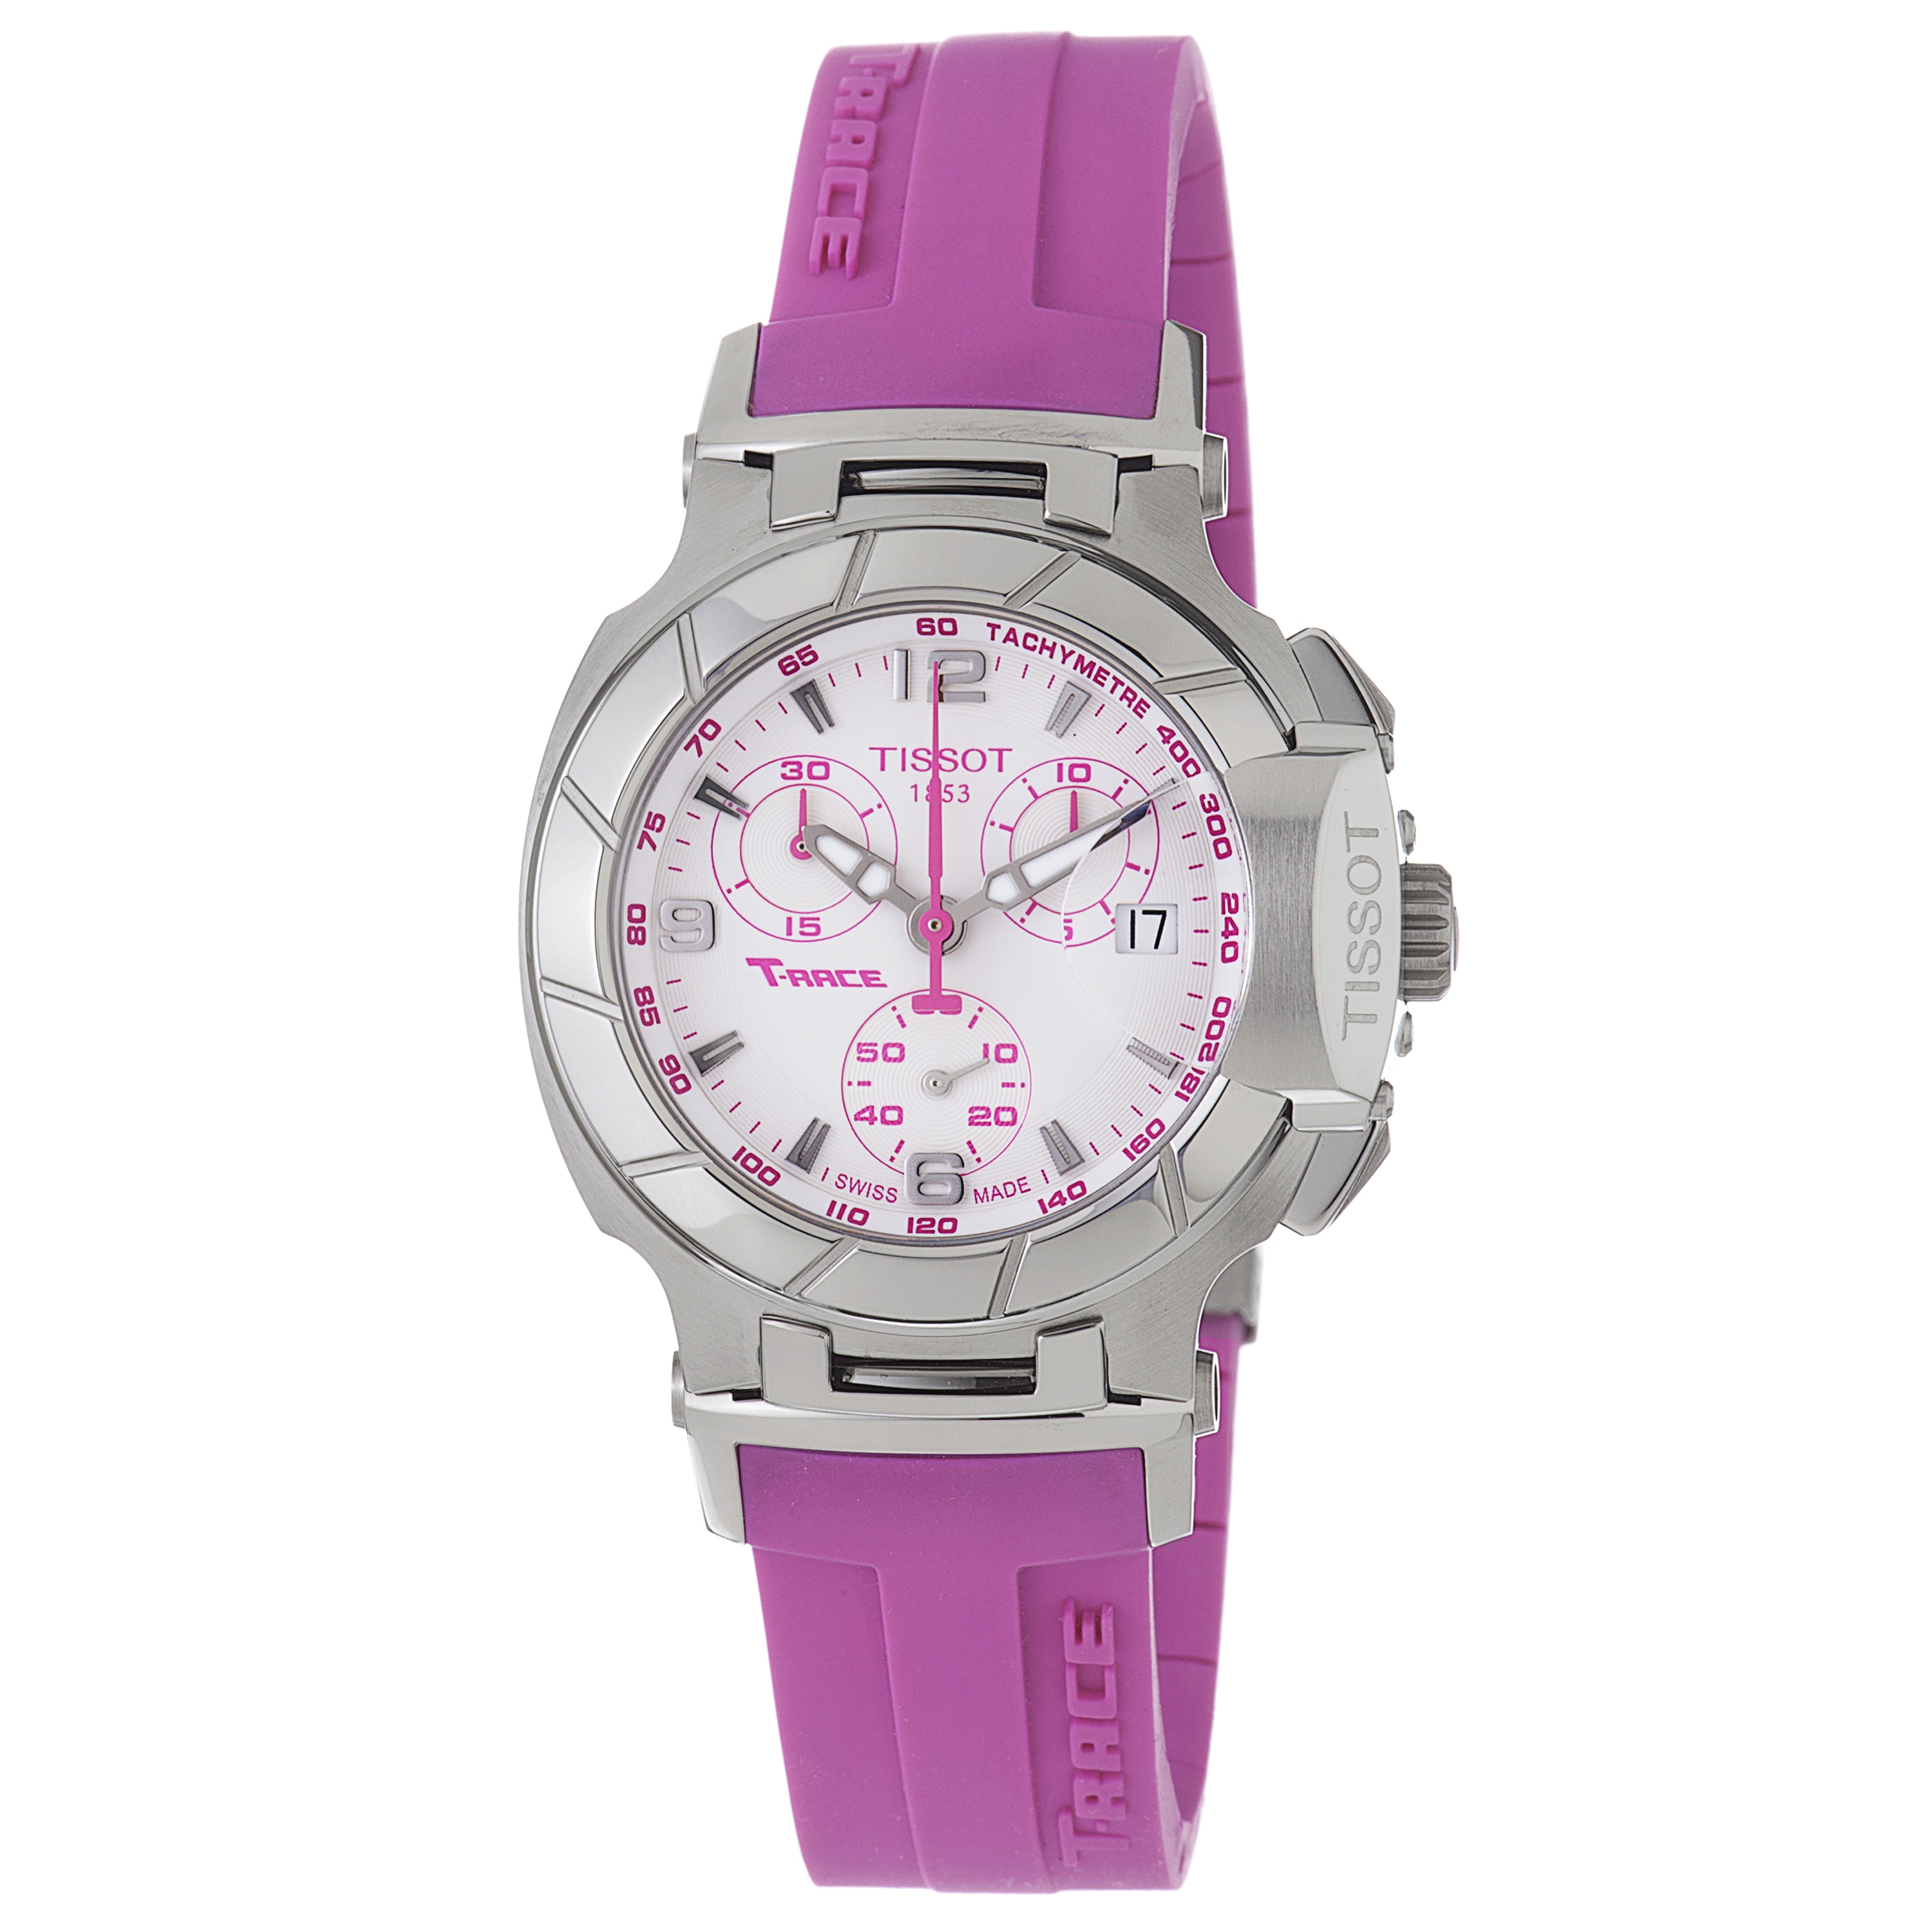 d5368b42f Shop Tissot Women's 'T-Race' White Chronograph Dial Pink Rubber Strap Watch  - Free Shipping Today - Overstock - 6486531